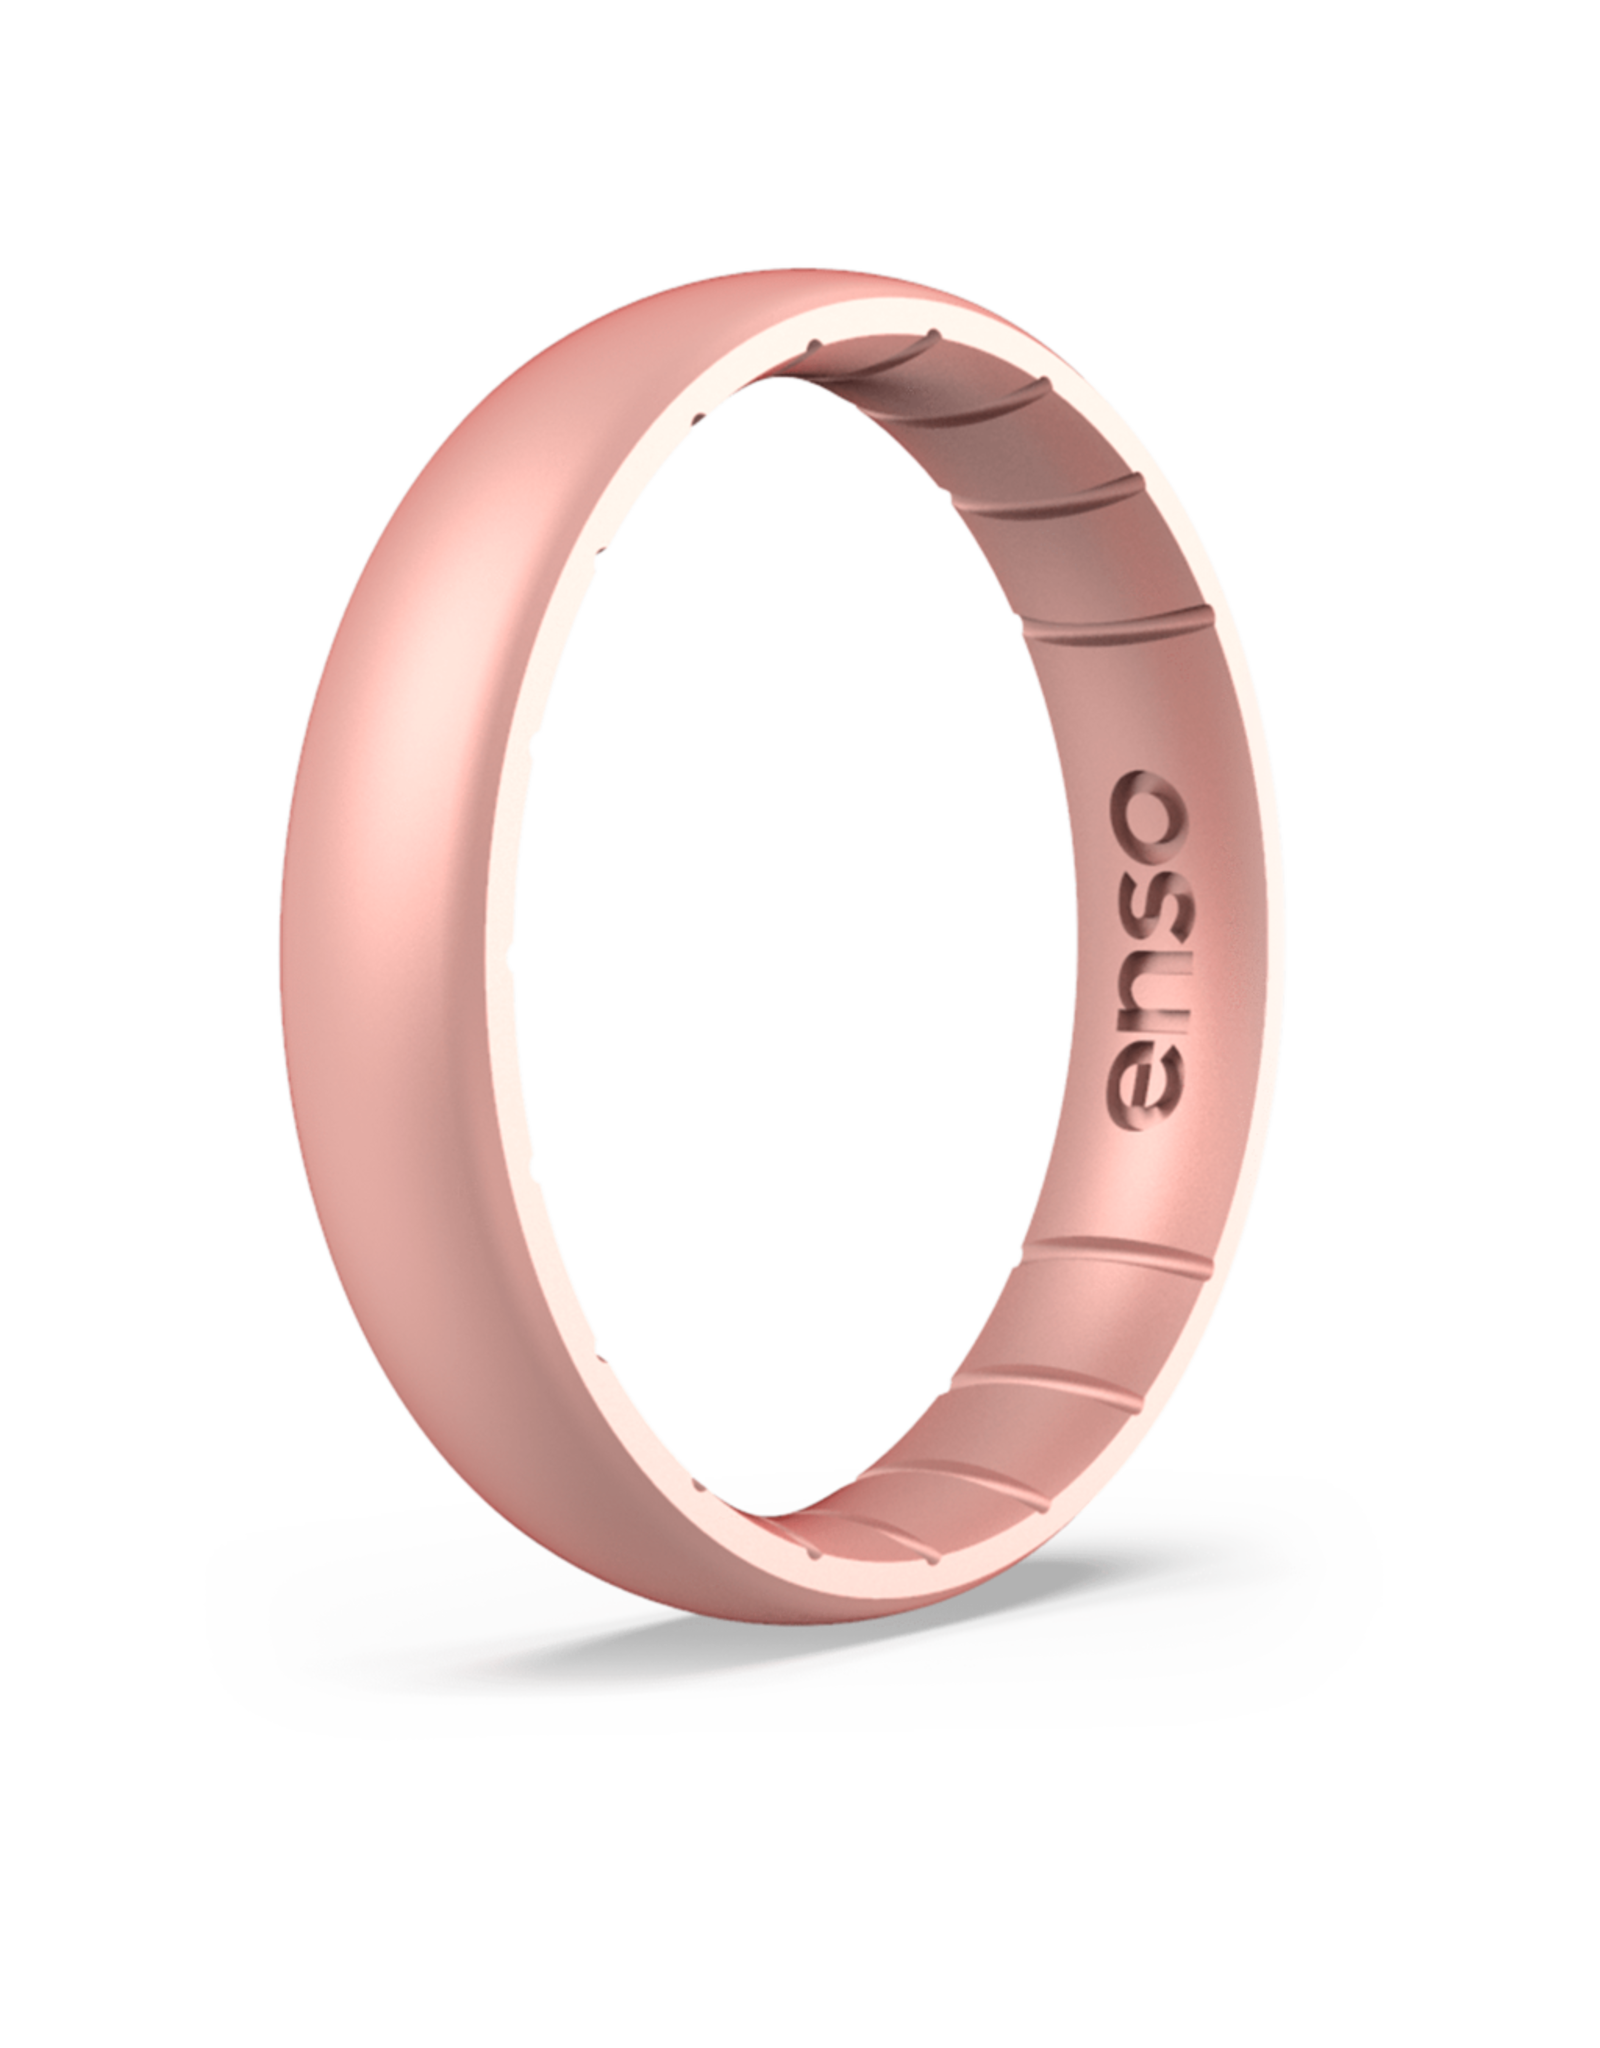 Enso Rings Enso Rings Elements Thin Silicone Ring